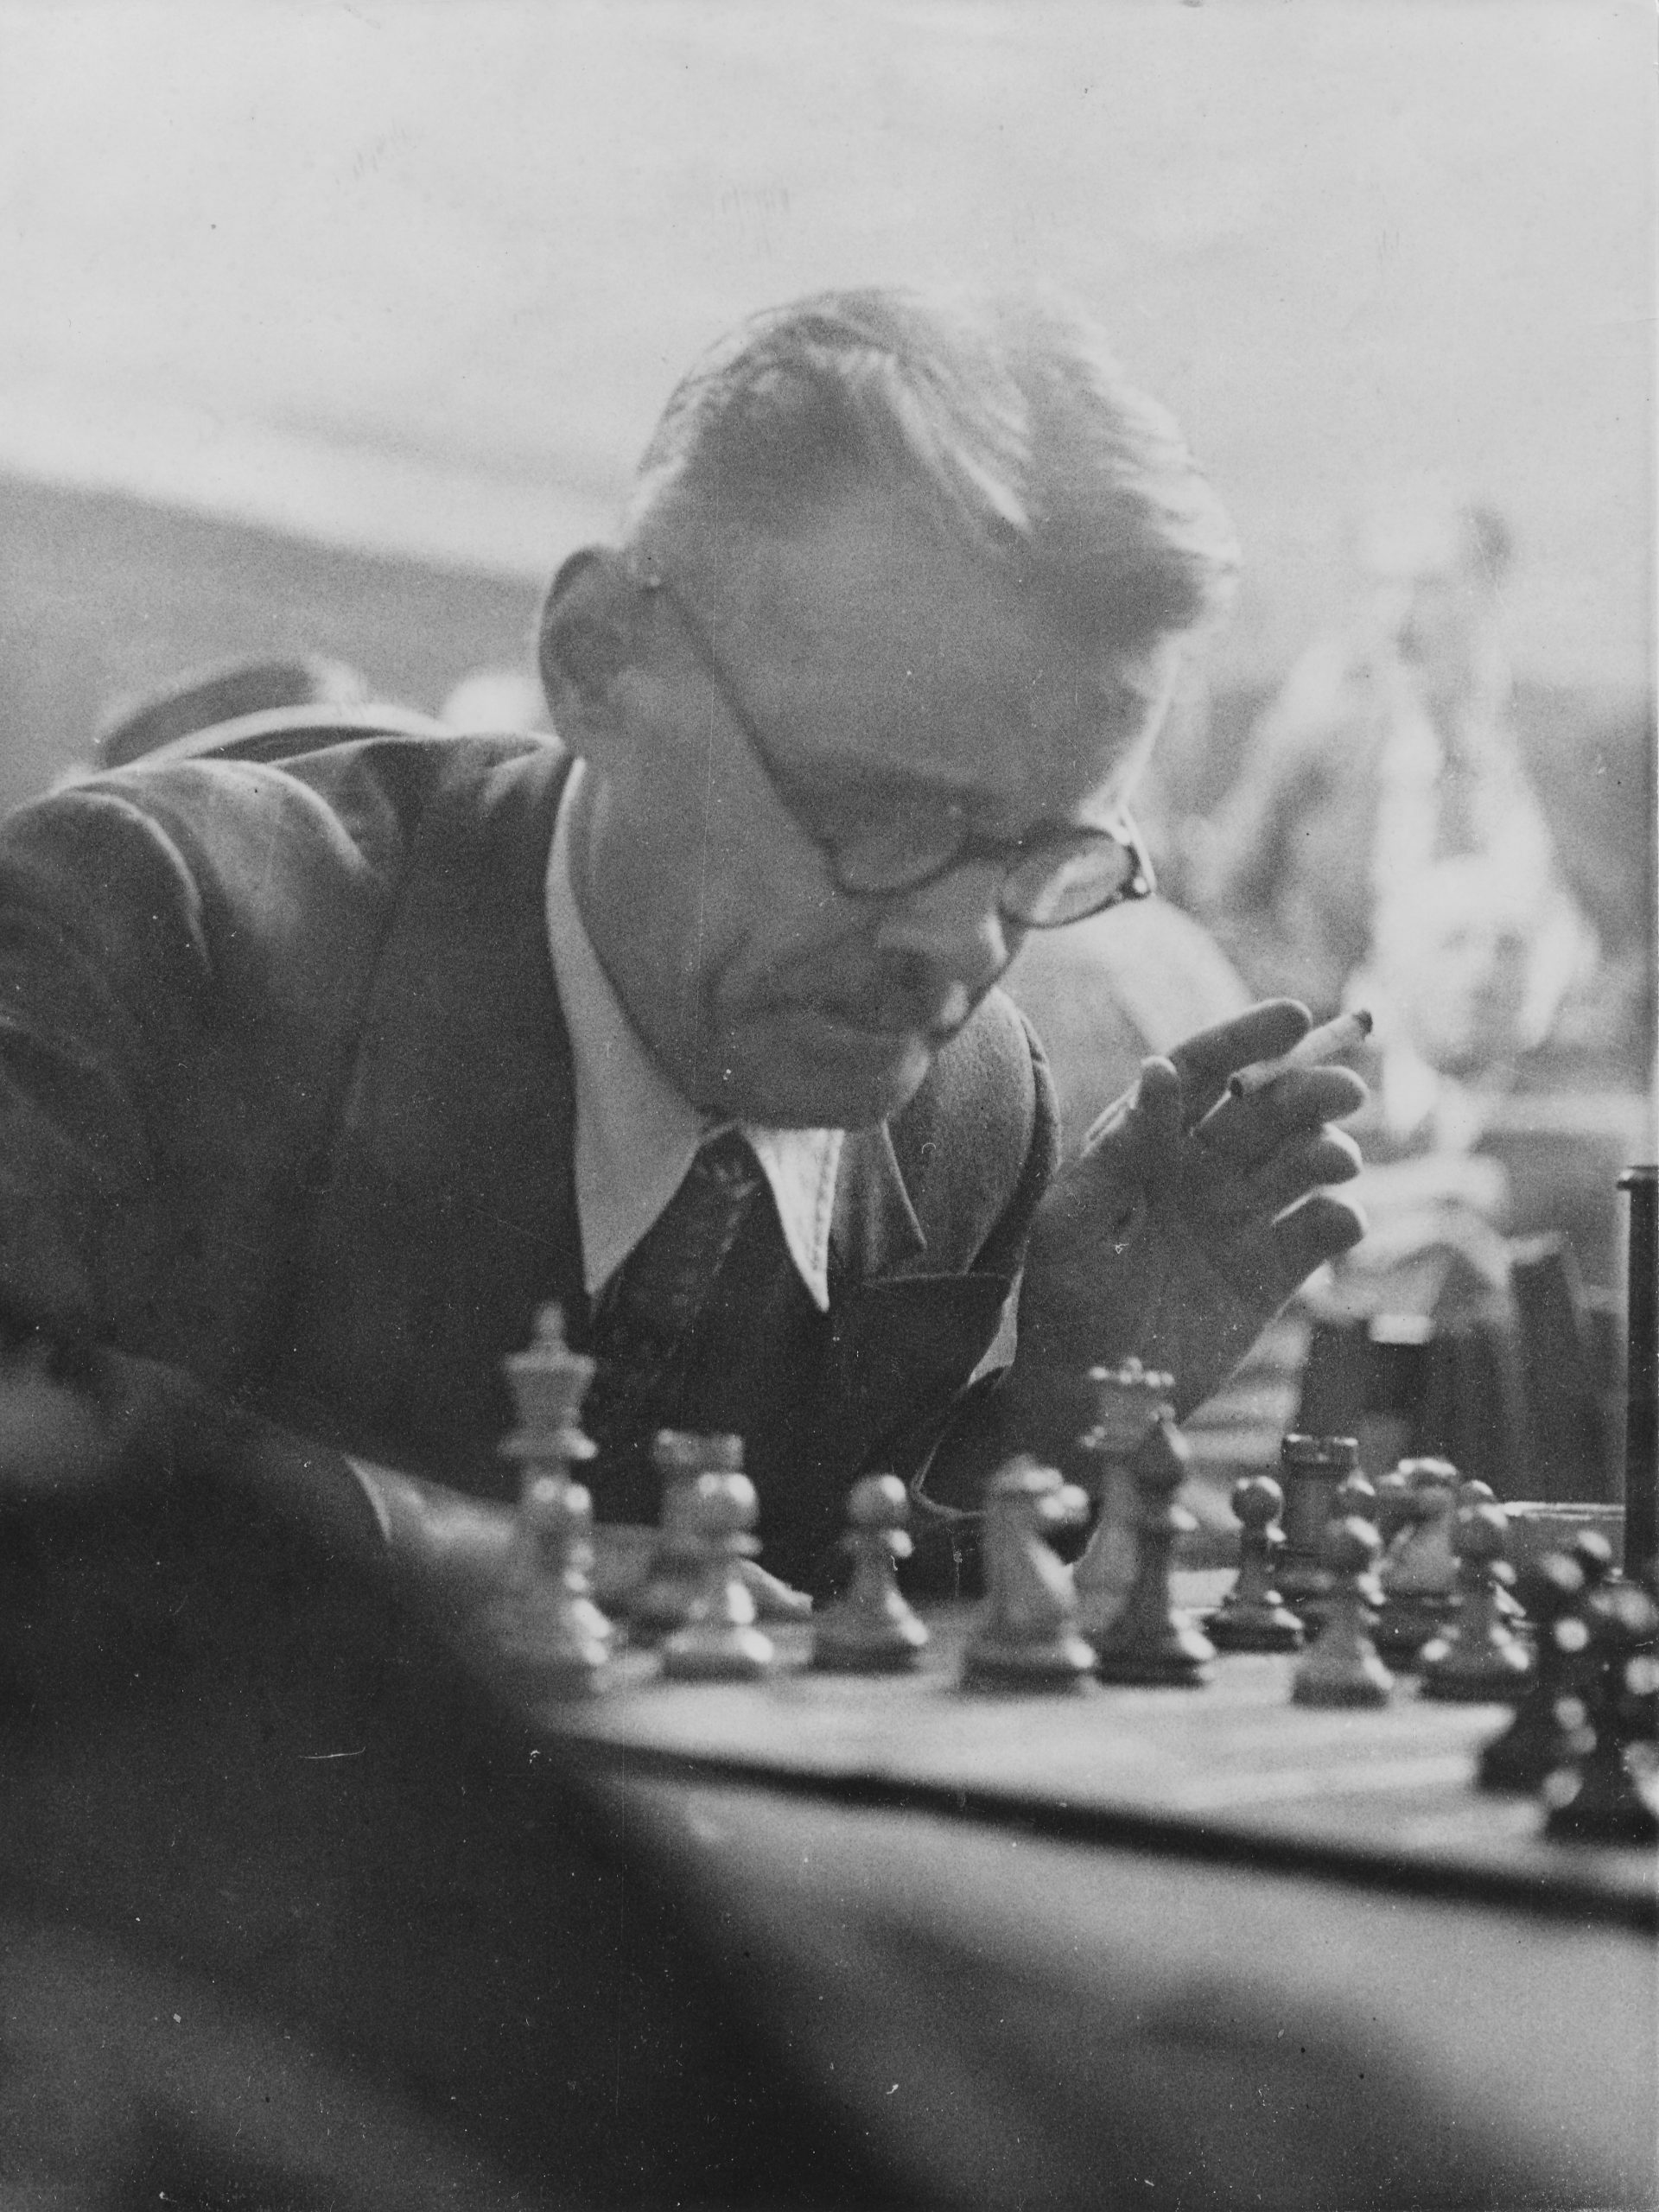 Eugene Znosko-Borovsky in play during the 1948 British Chess Federation Congress at Bishopsgate Institute, 30th August, 1948. Keystone Press Archive.